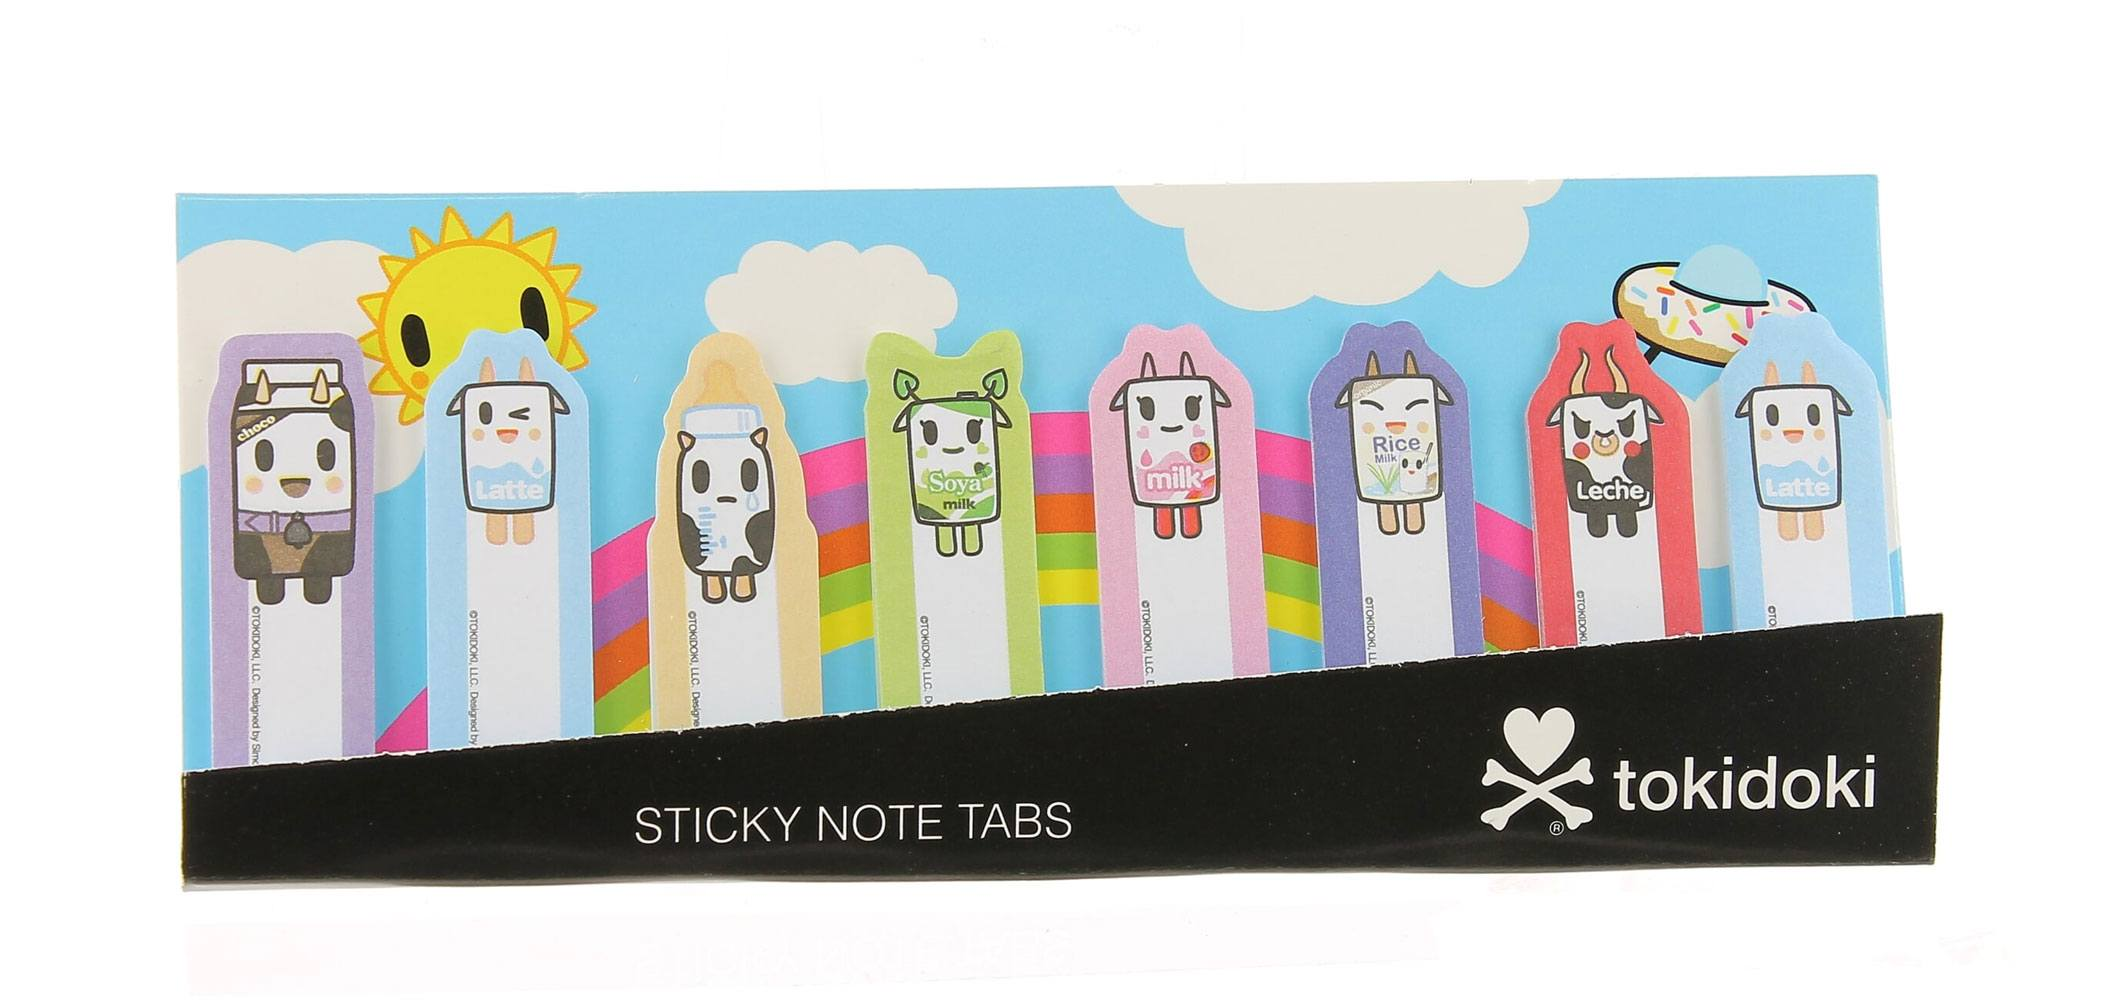 Tokidoki Sticky Note Tabs Members